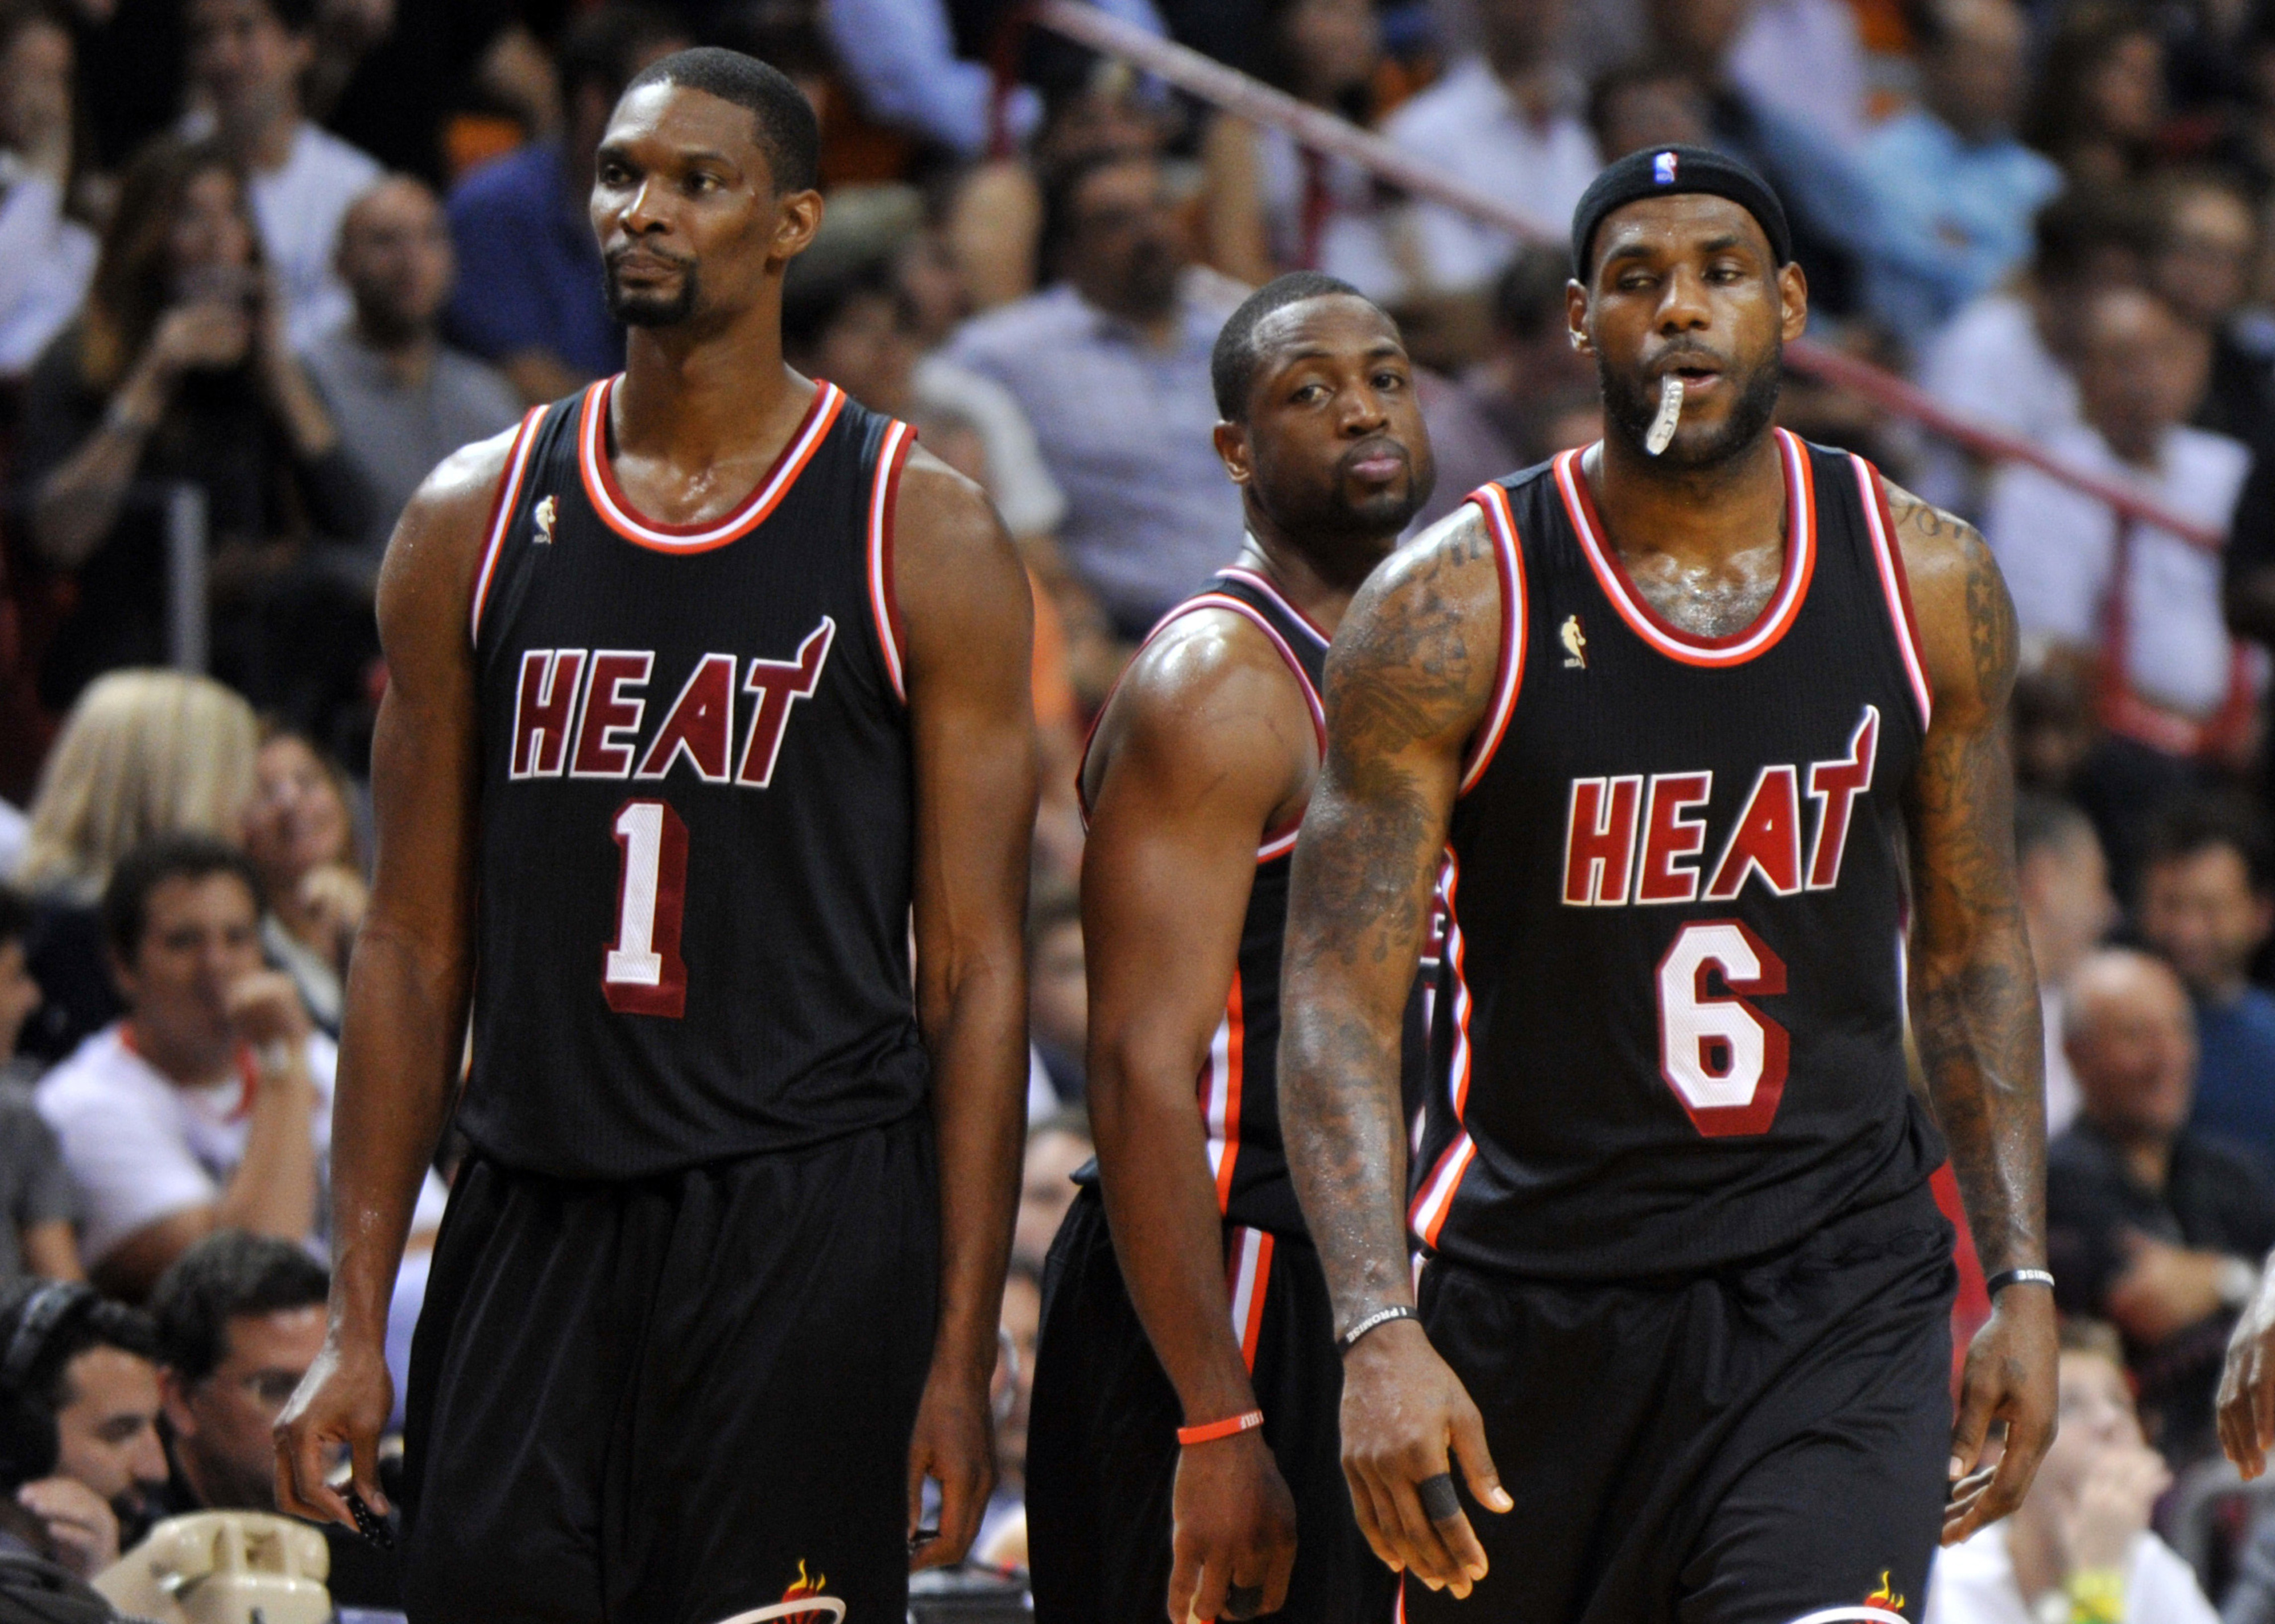 Will LeBron James leave the Heat for greener pastures?